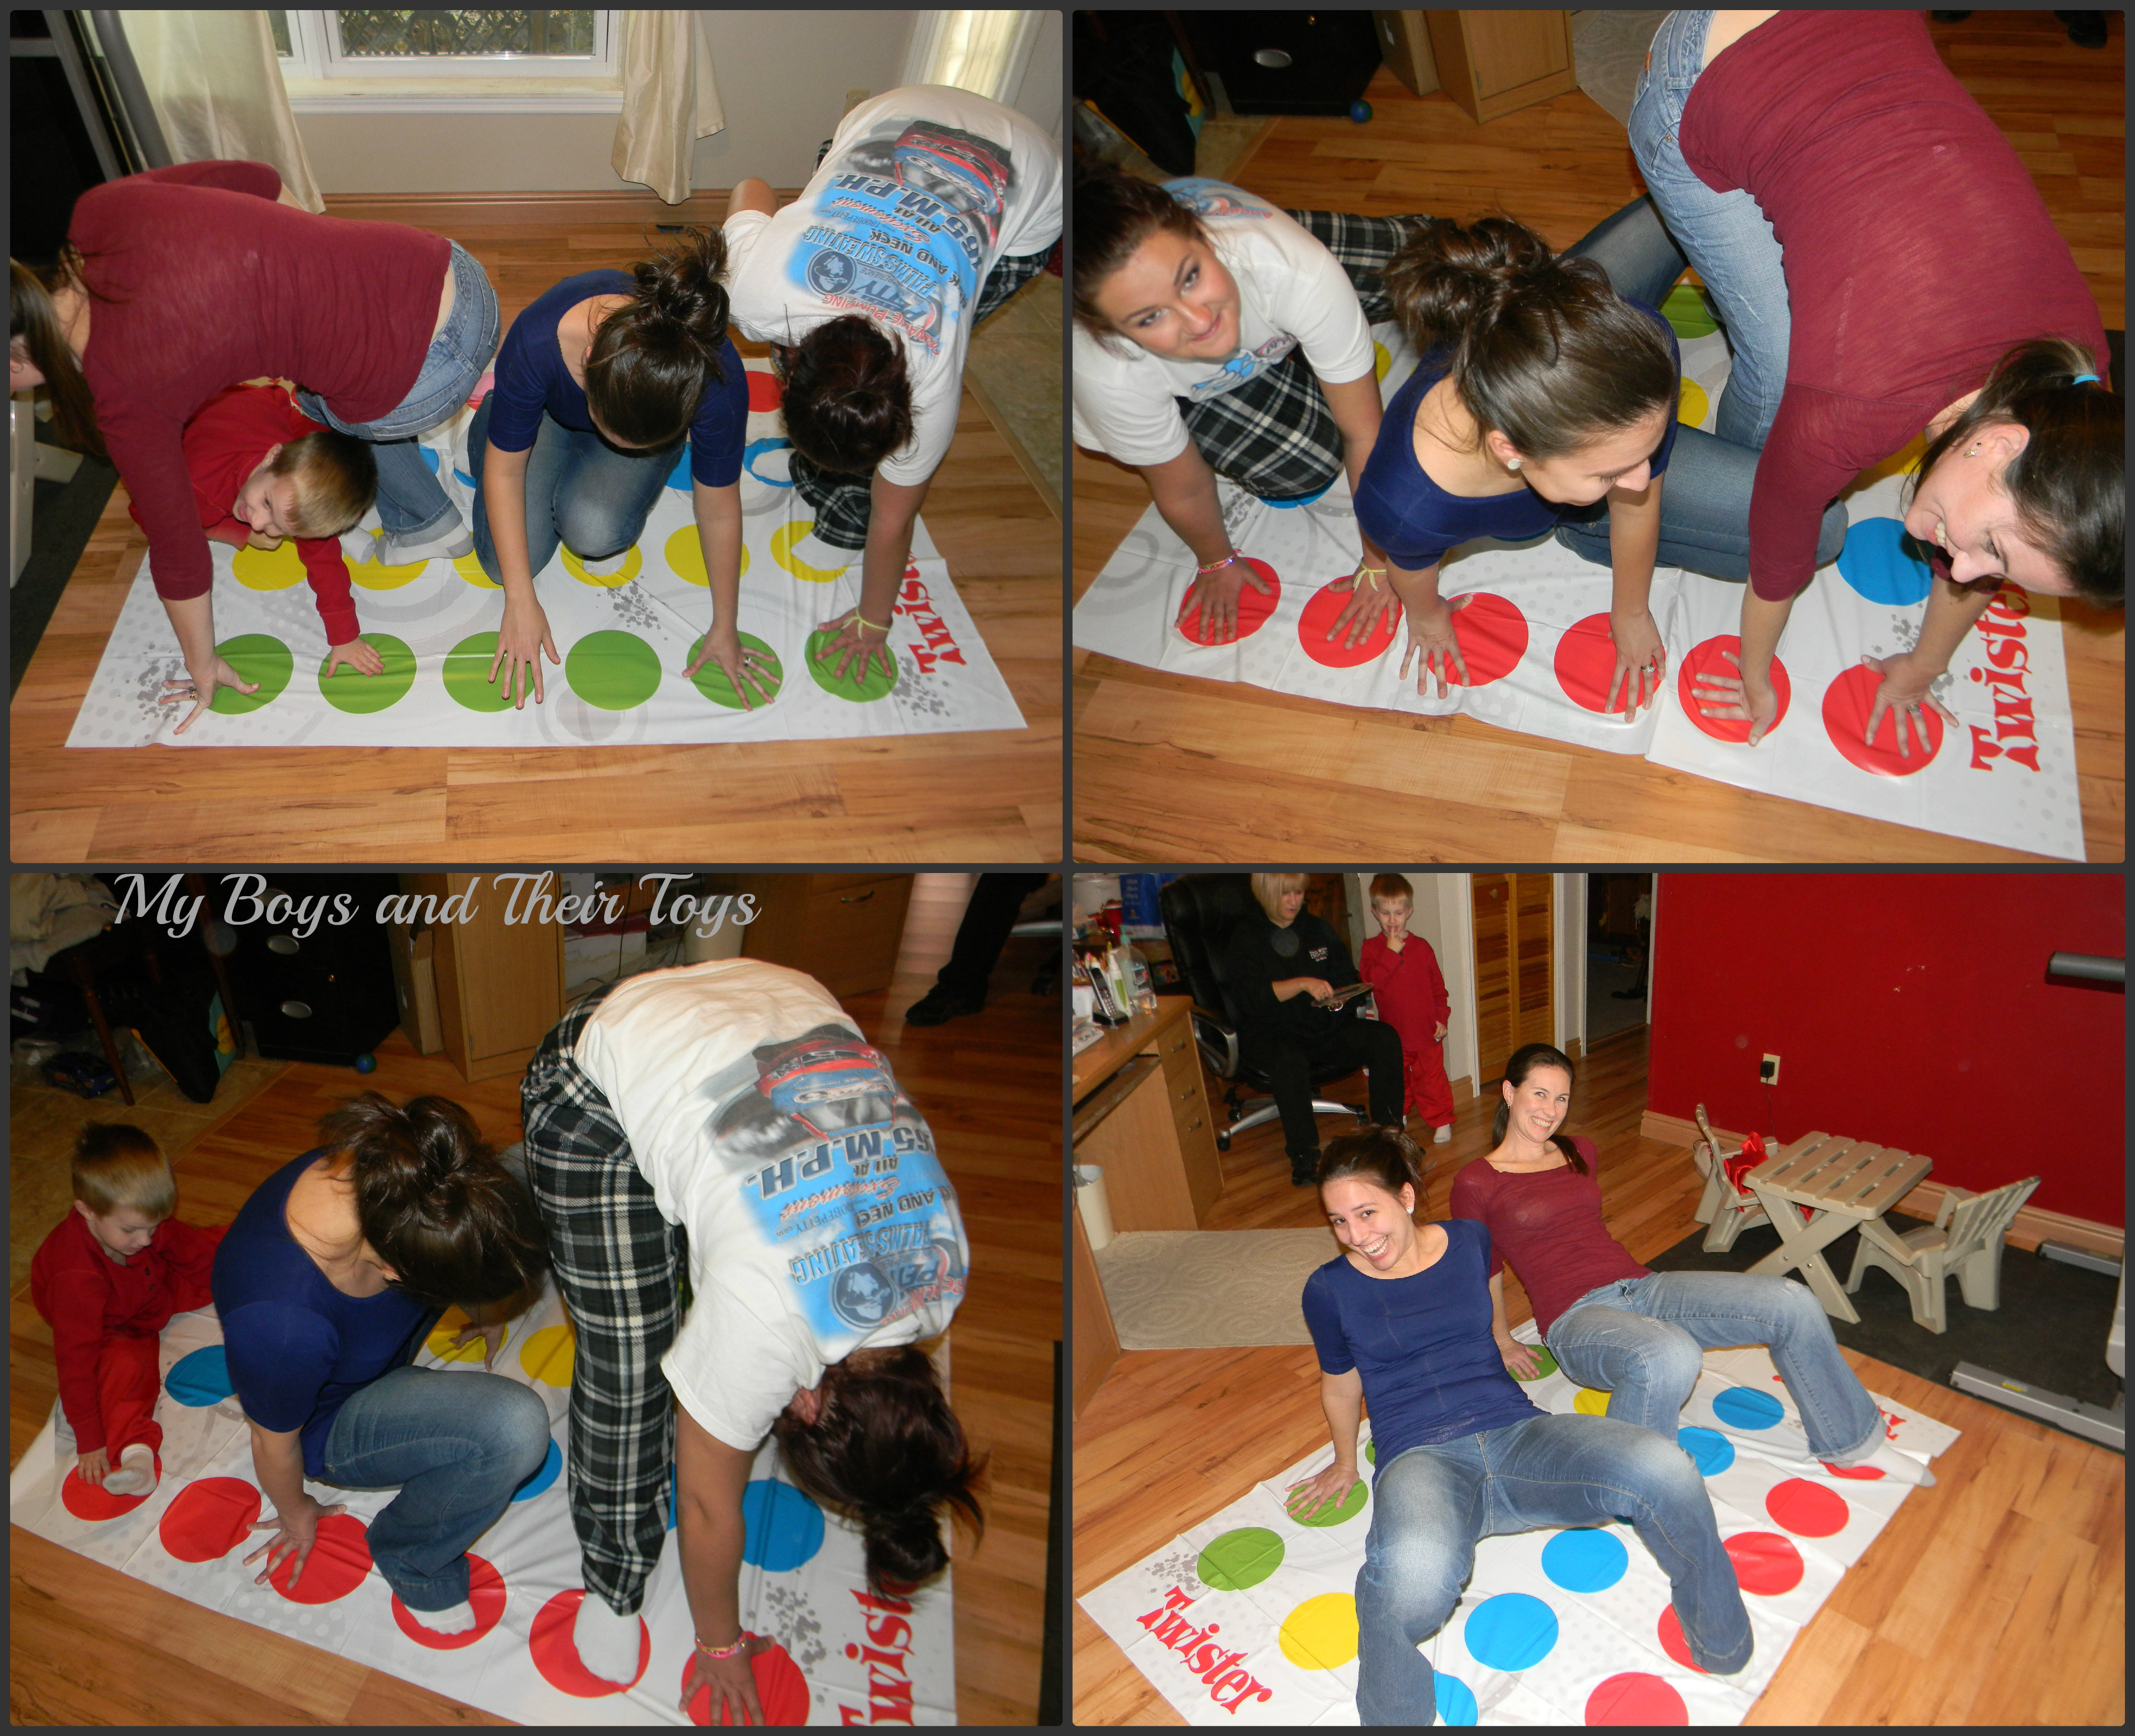 Boys Twister: http://getwap.sayt.im/images/boy-twister.html